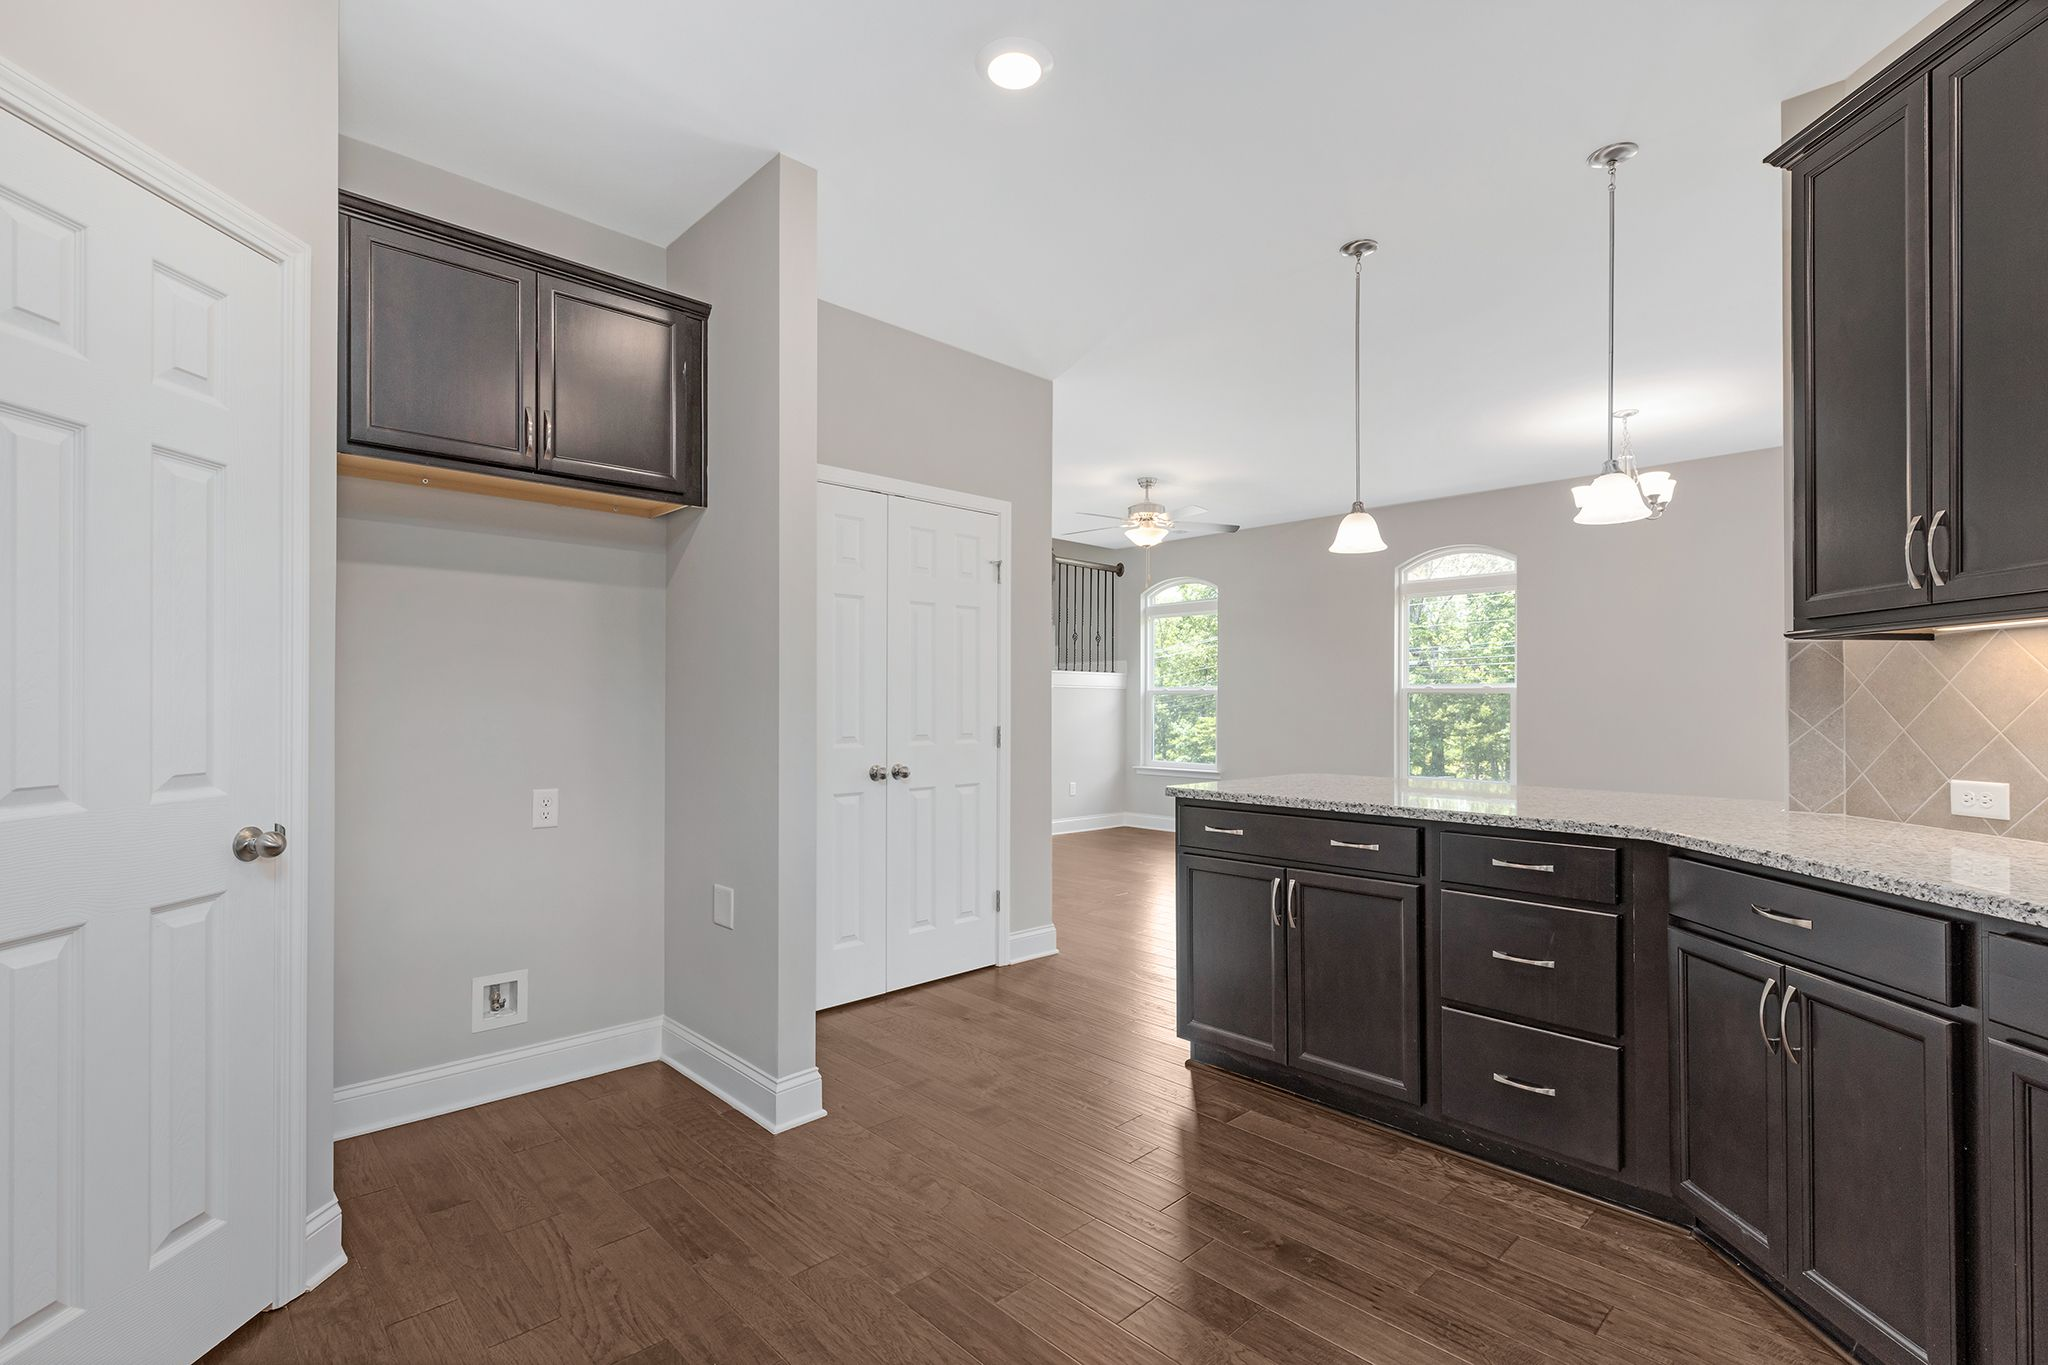 Kitchen featured in The Raleigh Courtyard Cottage By Goodall Homes in Chattanooga, GA